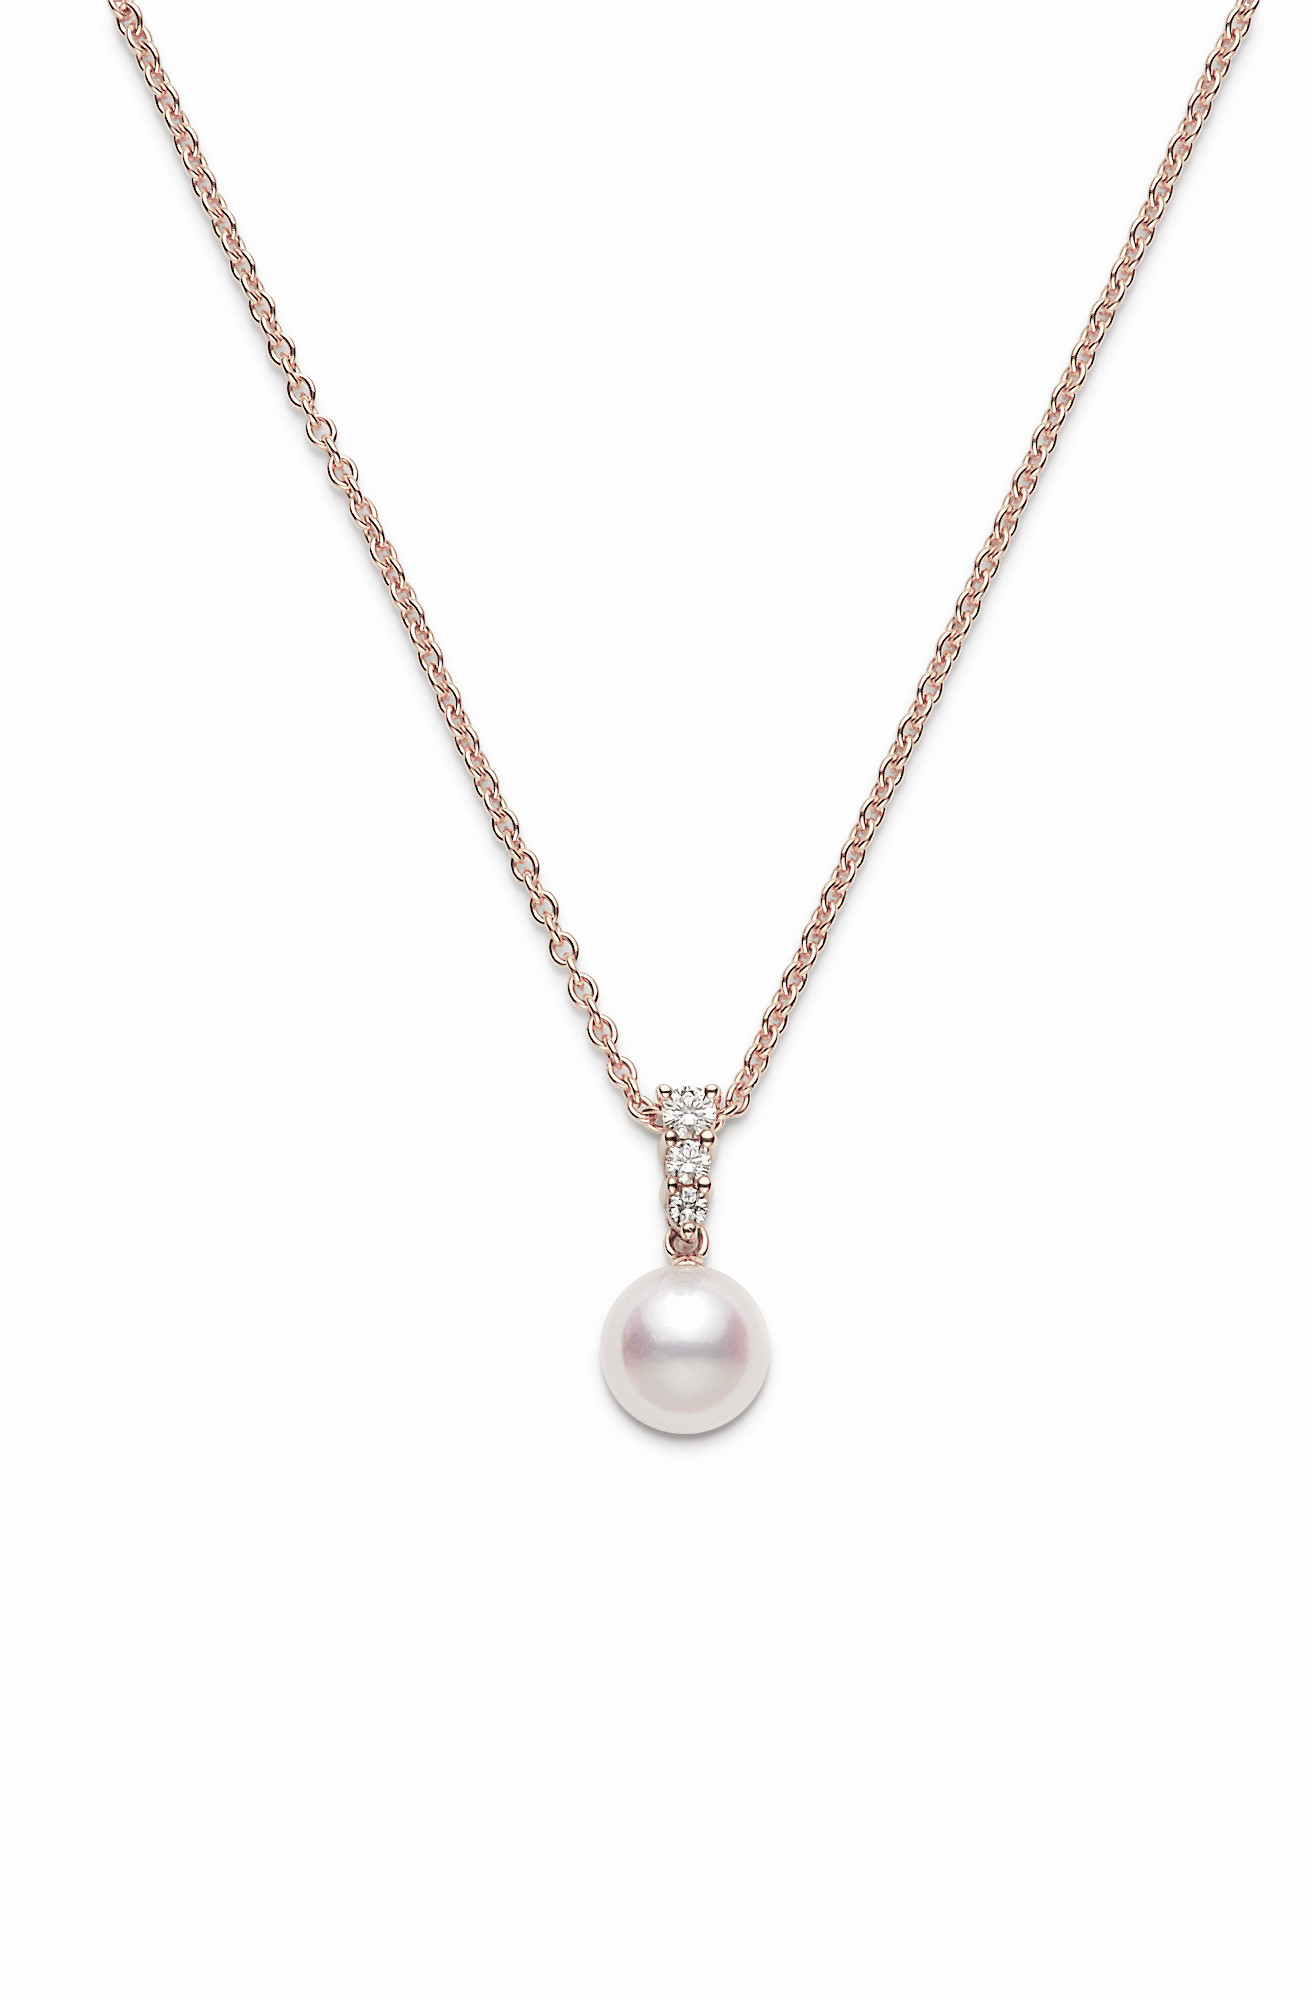 Mikimoto Akoya Pearl and Diamond Necklace in 18K Rose Gold full view